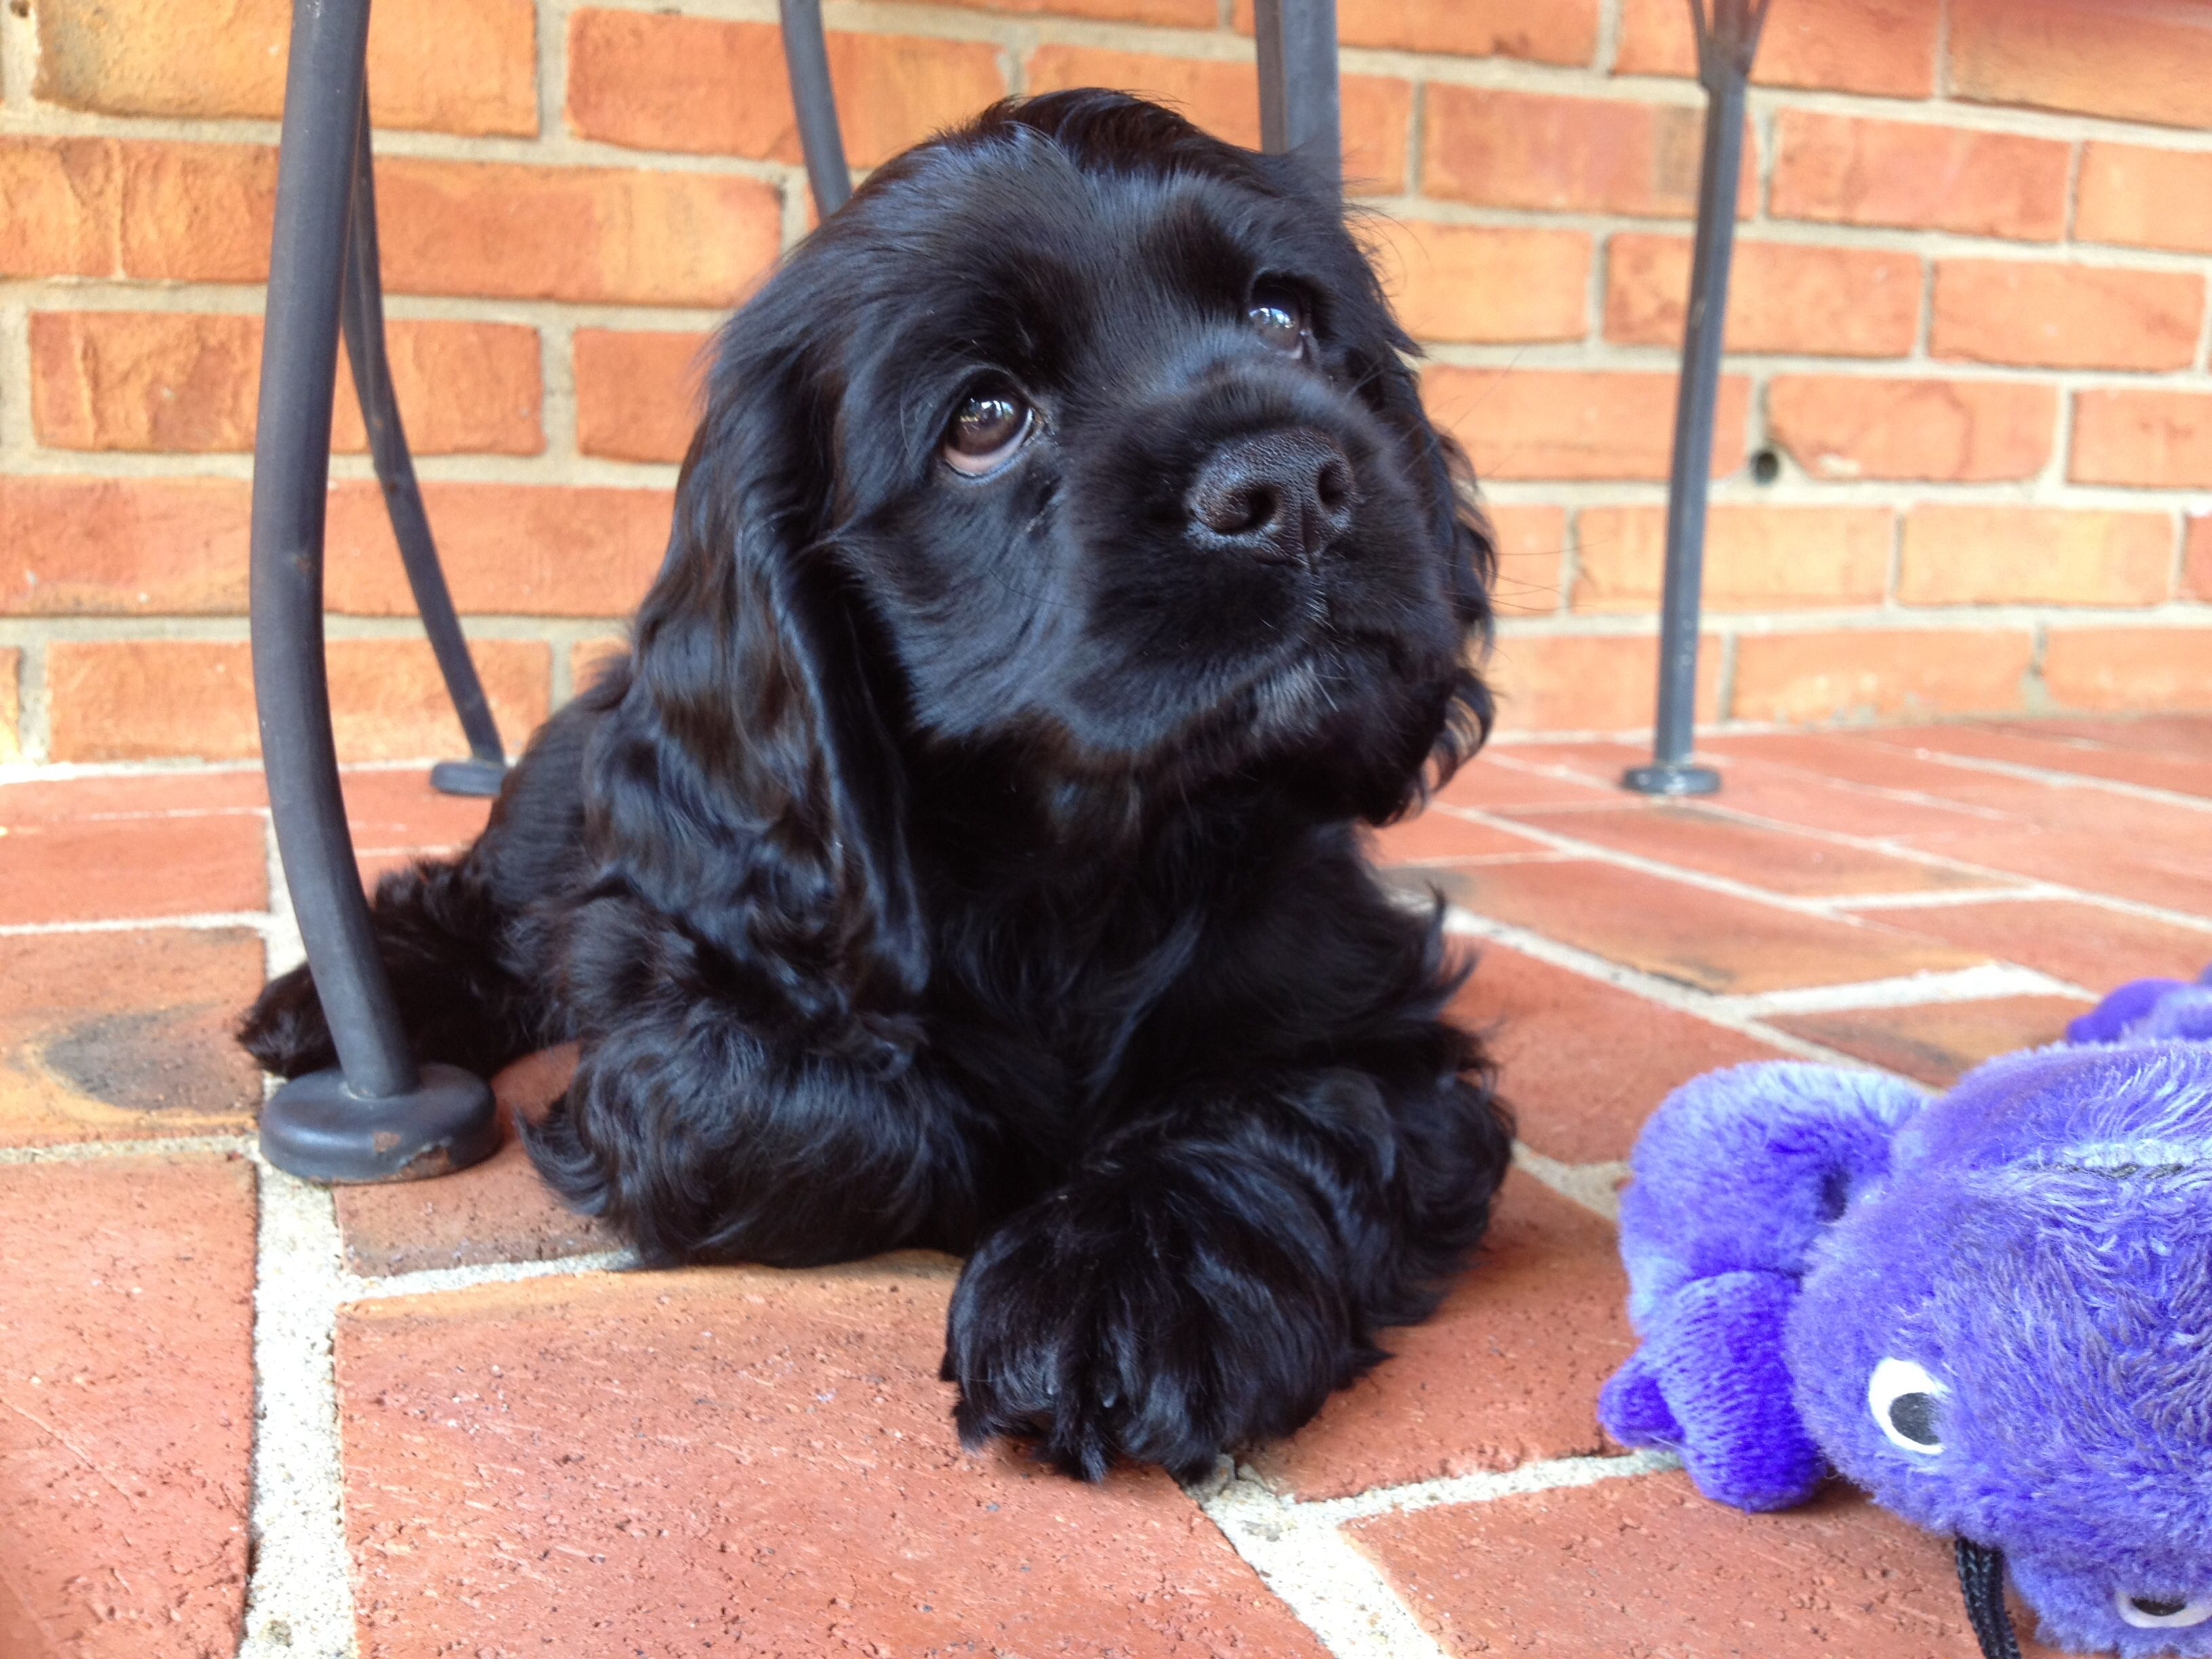 Black Cocker Spaniel Puppy Black Cocker Spaniel Puppies Black